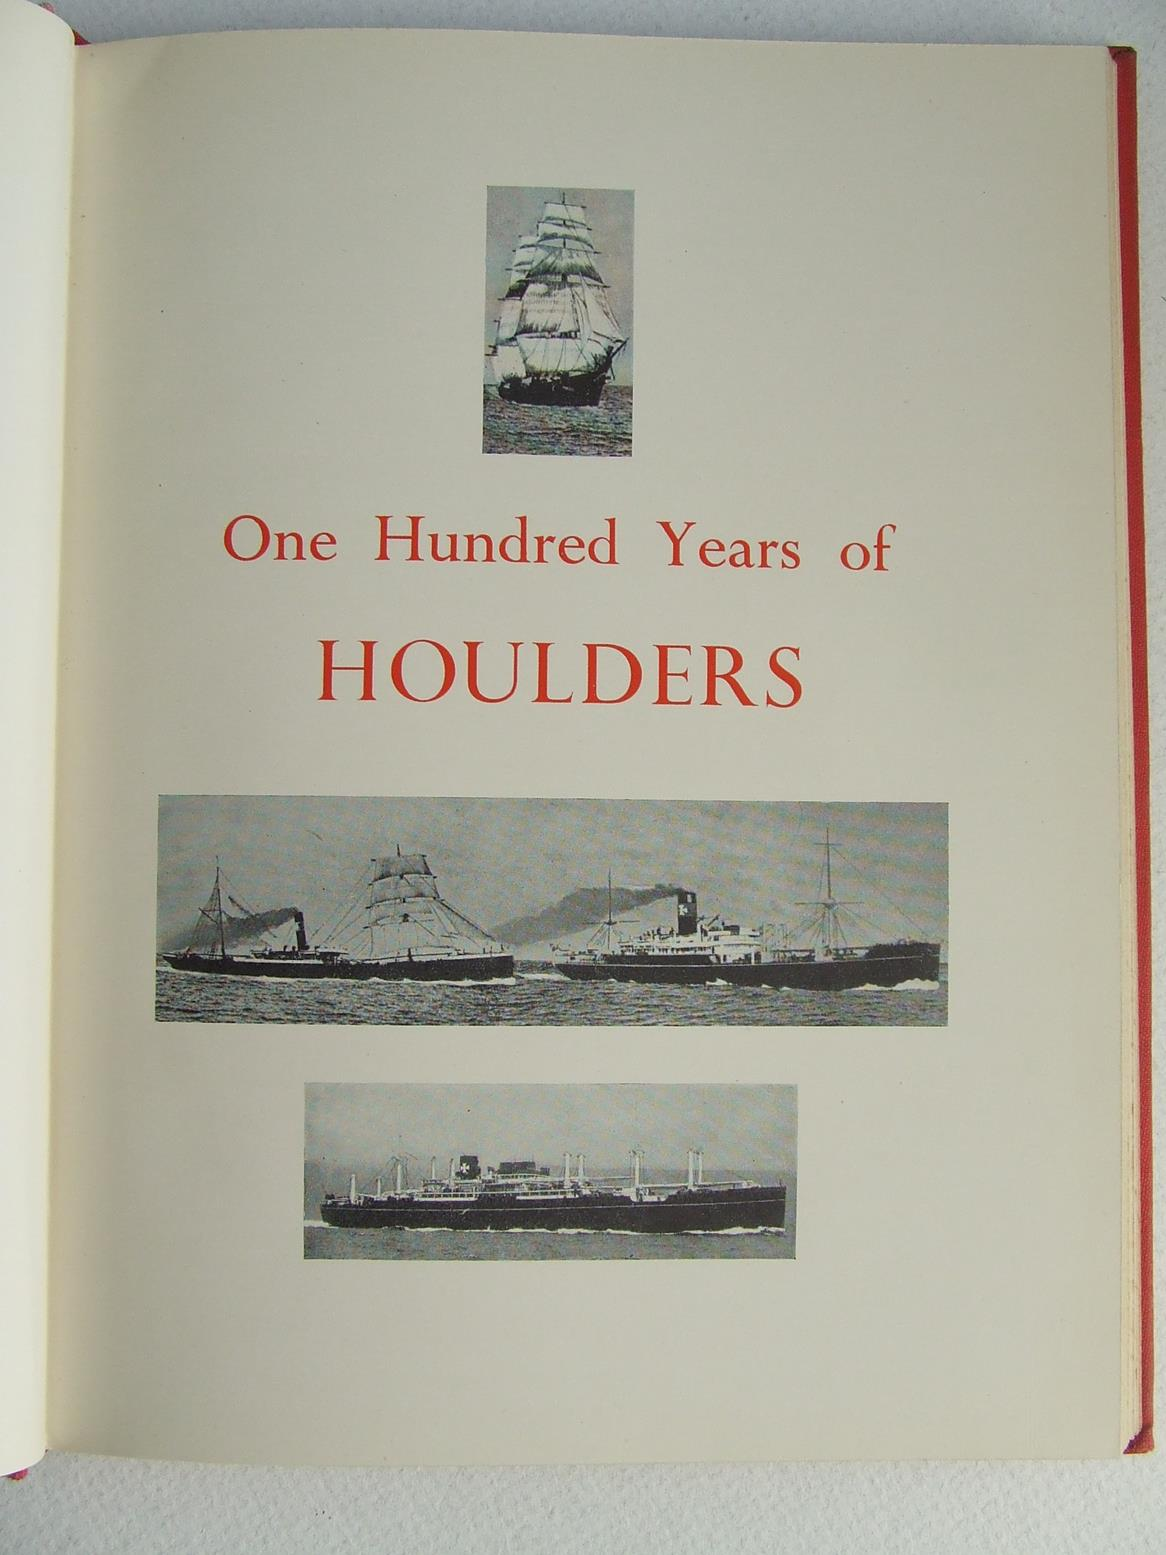 One Hundred Years of Houlders